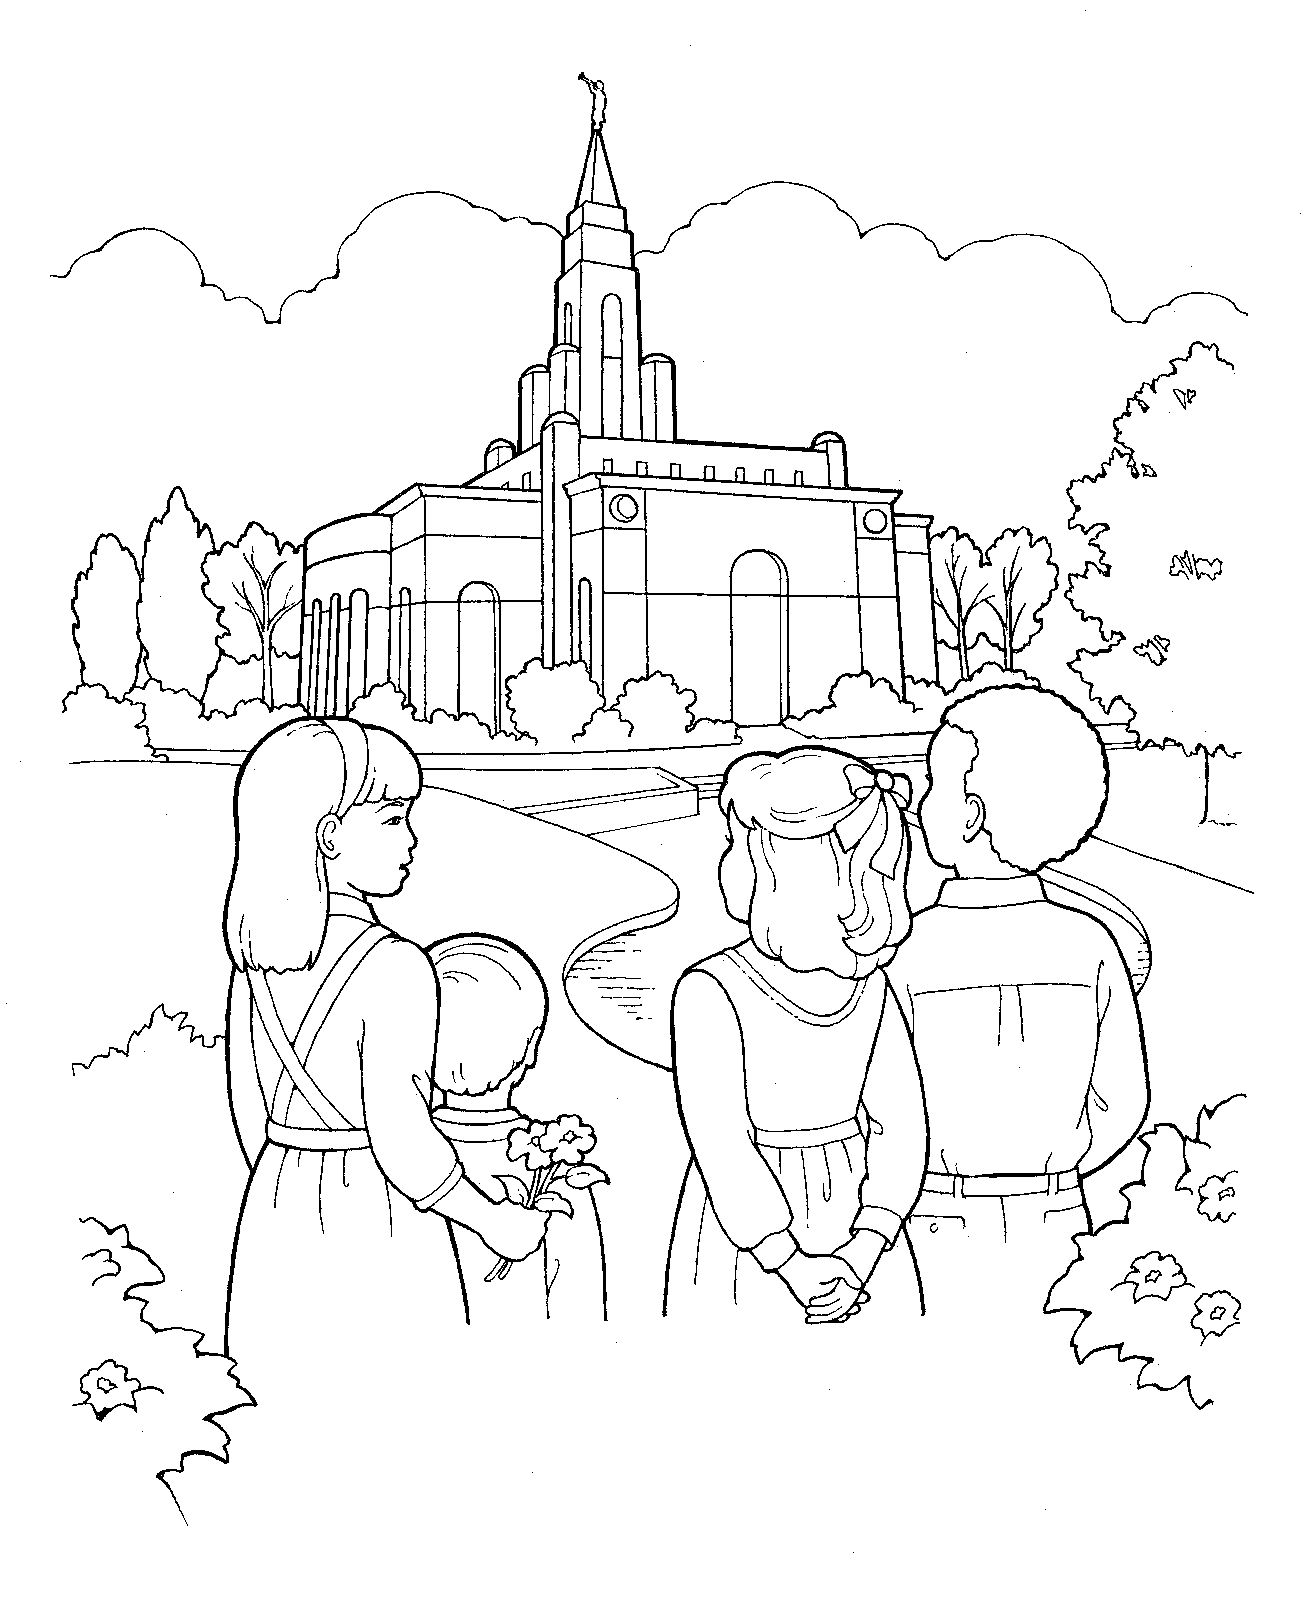 Fan image with regard to lds printable coloring pages